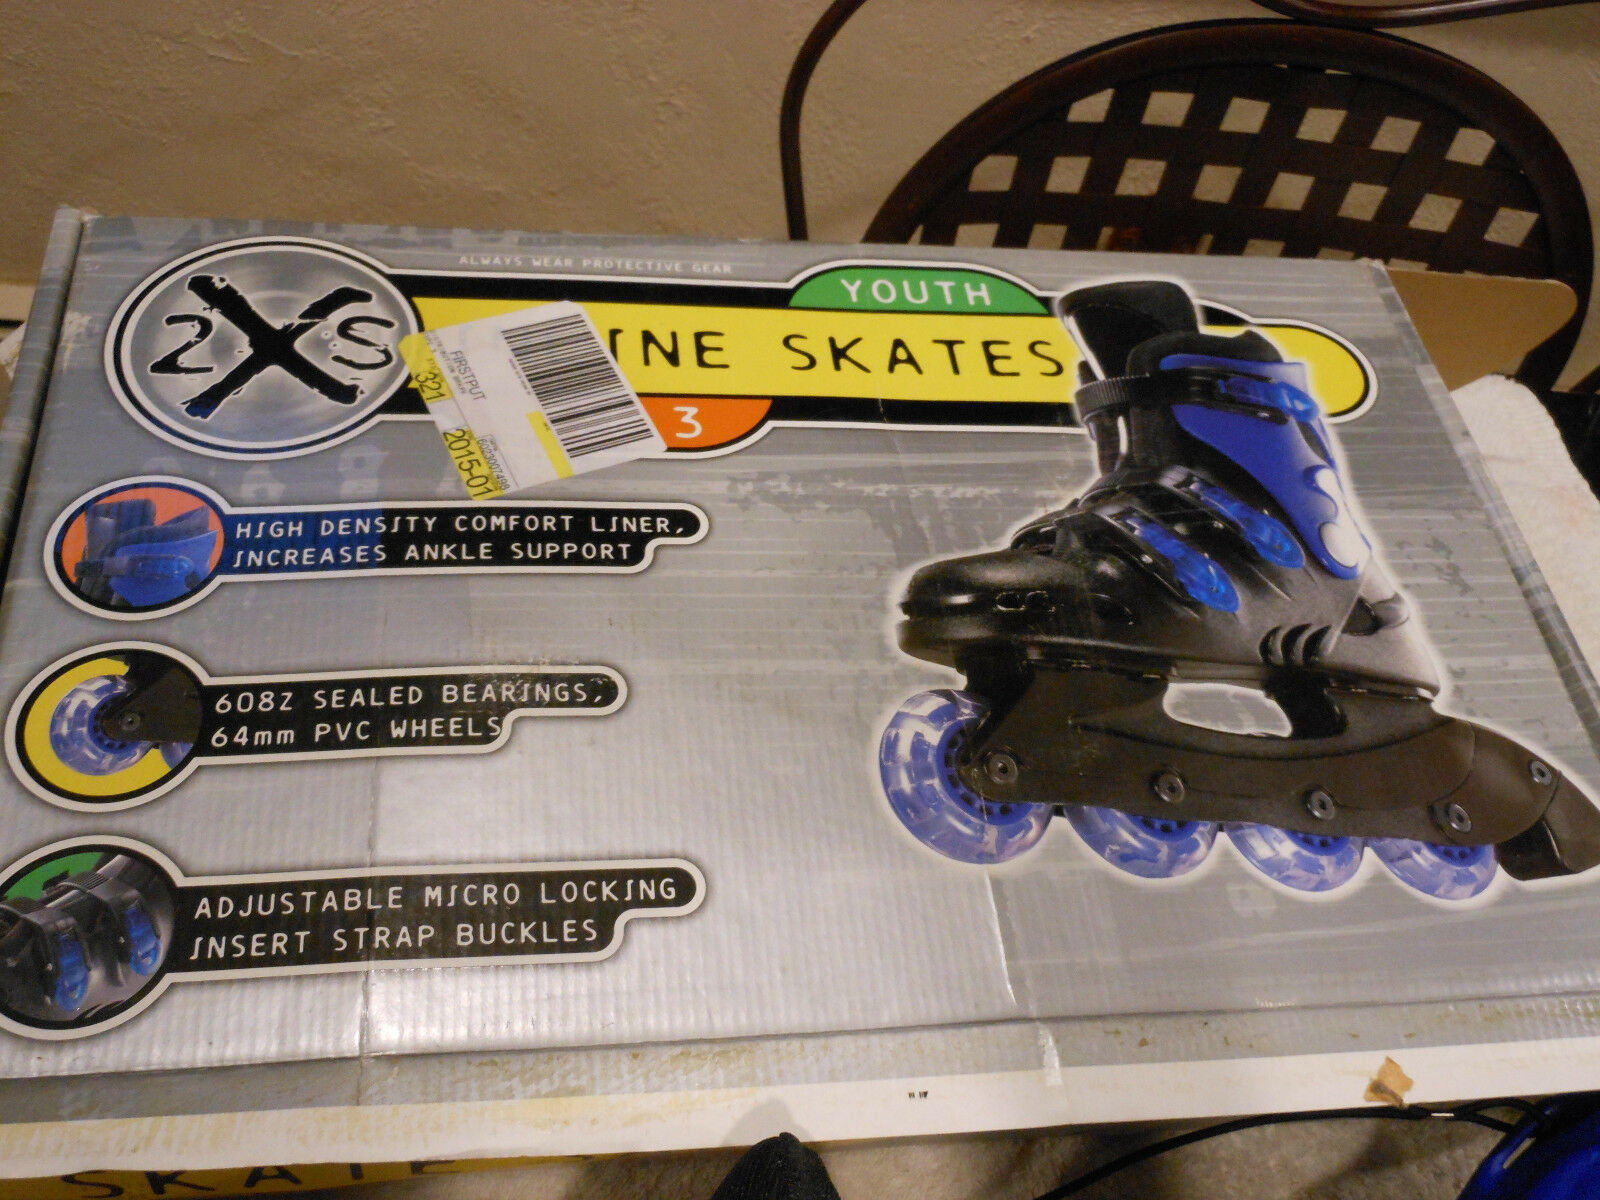 2XS ROLLERBLADE INLINE SCATES YOUTH SIZE 3  NIB